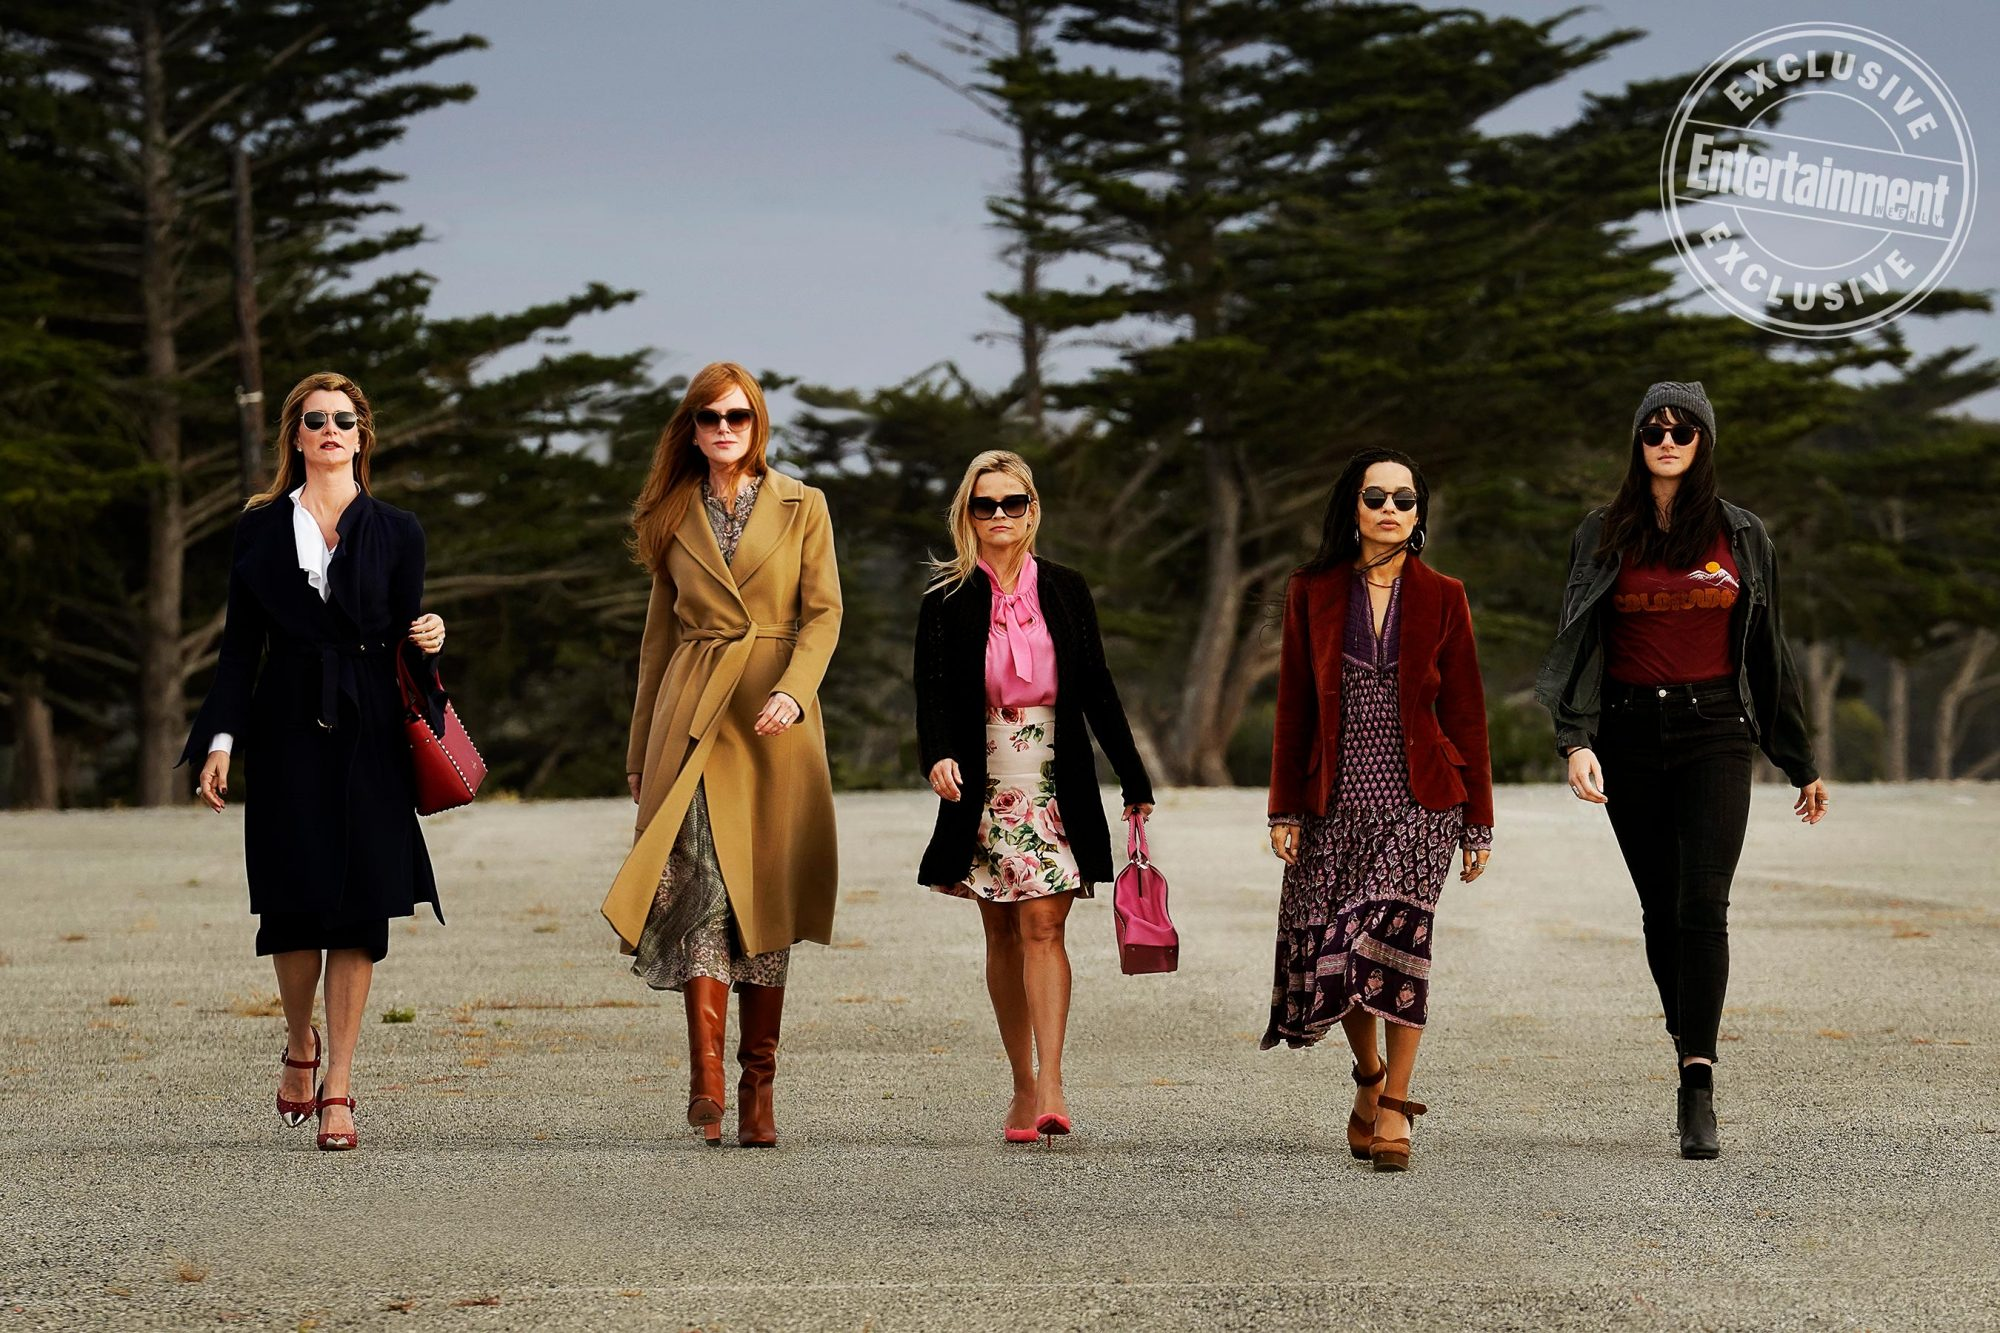 Big Little Lies Gallery Pictured: Laura Dern, Nicole Kidman, Reese Witherspoon, Zoë Kravitz and Shailene Woodley